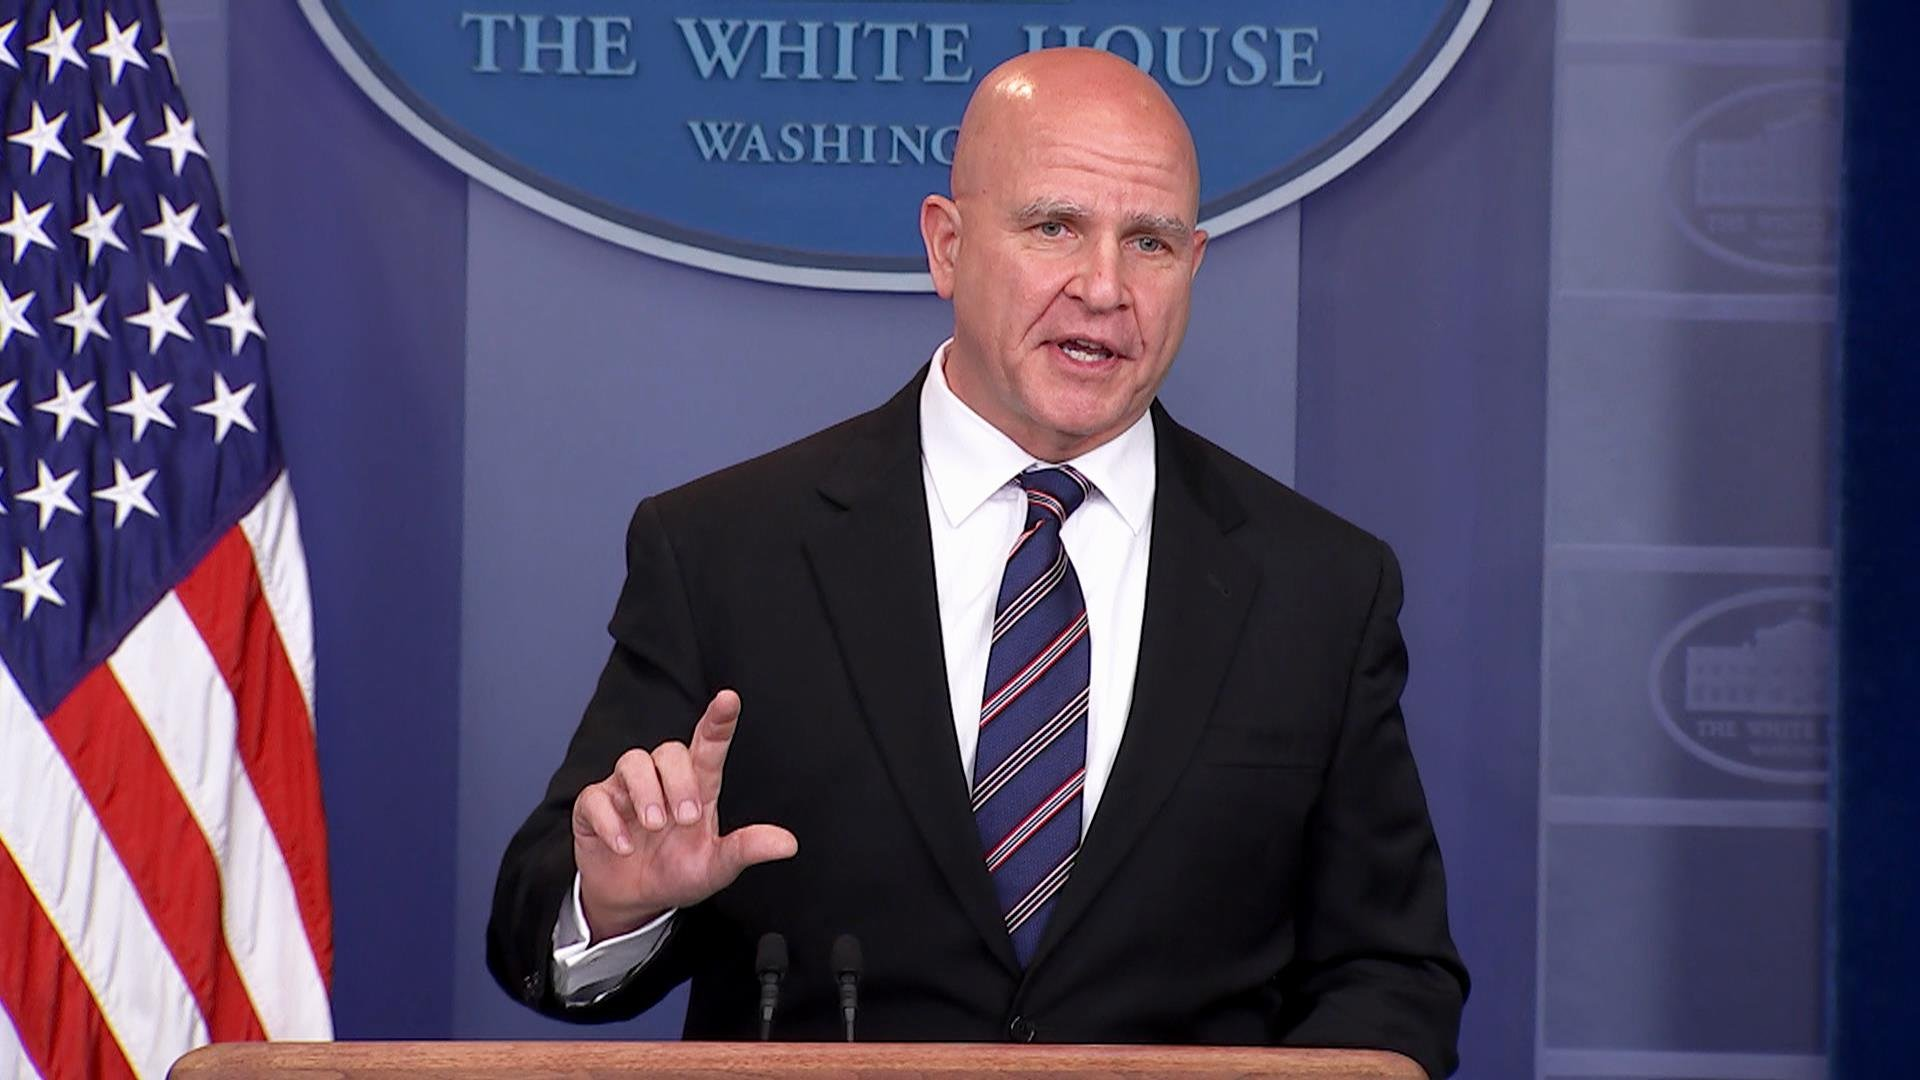 White House denies security adviser McMaster is on way out